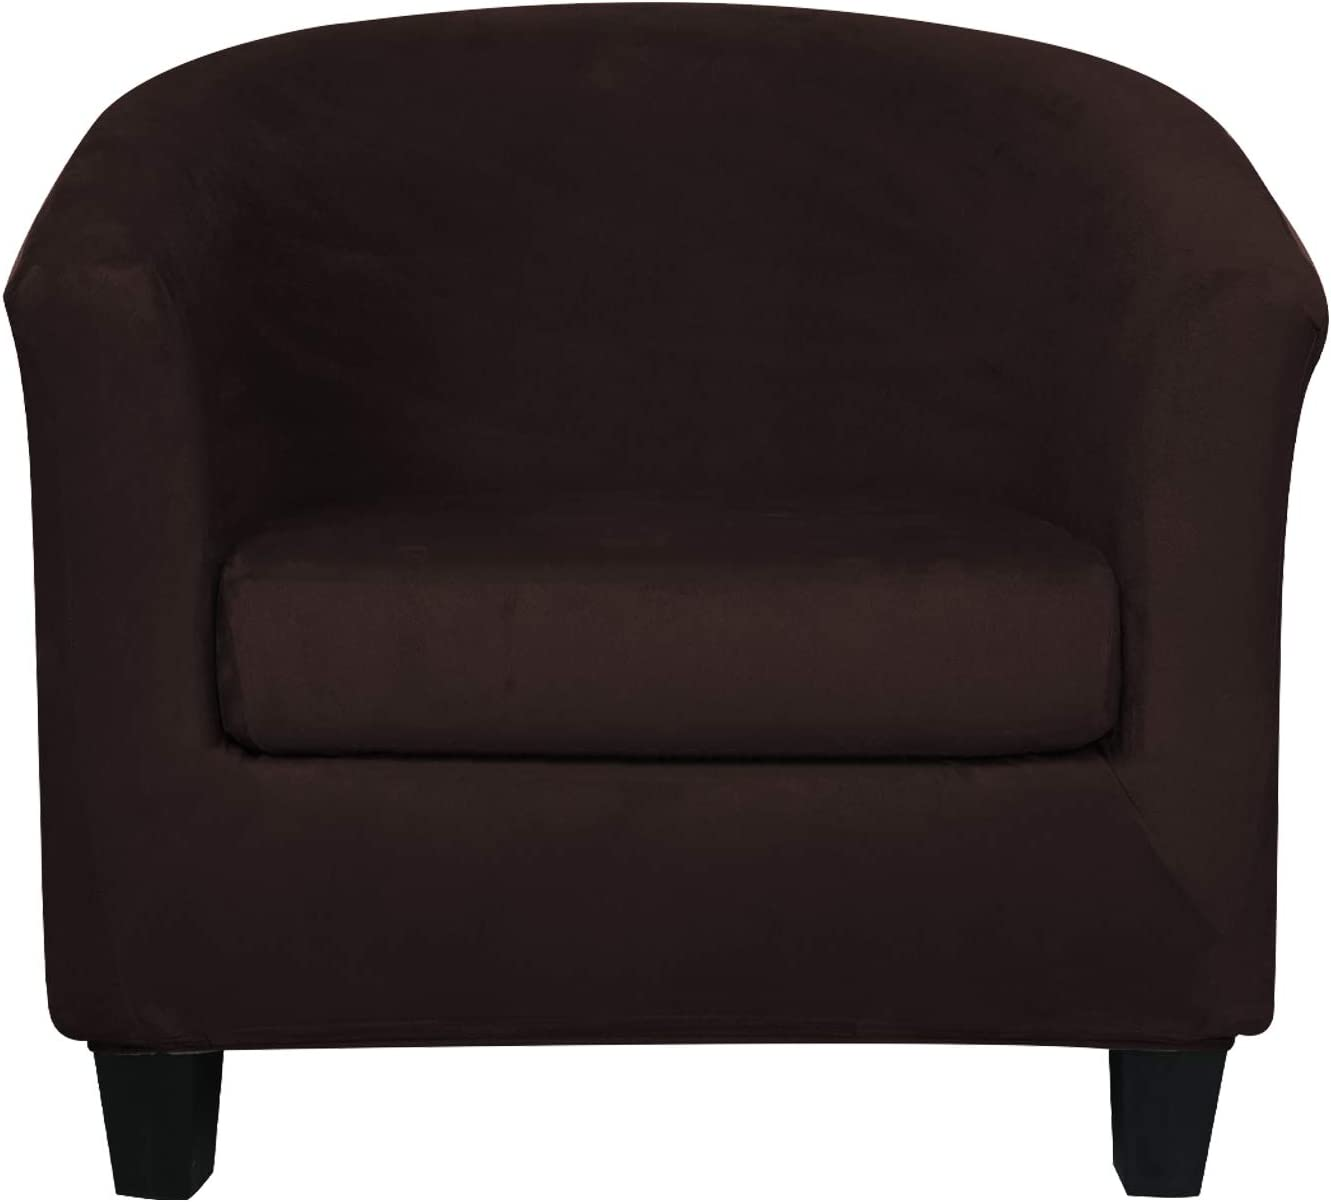 2 Pieces Velvet Tub Chair Covers with Cushion Cover Stretch Soft Removable Tub Chair Slipcovers Armchair Sofa Couch Furniture Protector for Living Room Club Bar Counter Hotel (Brown)